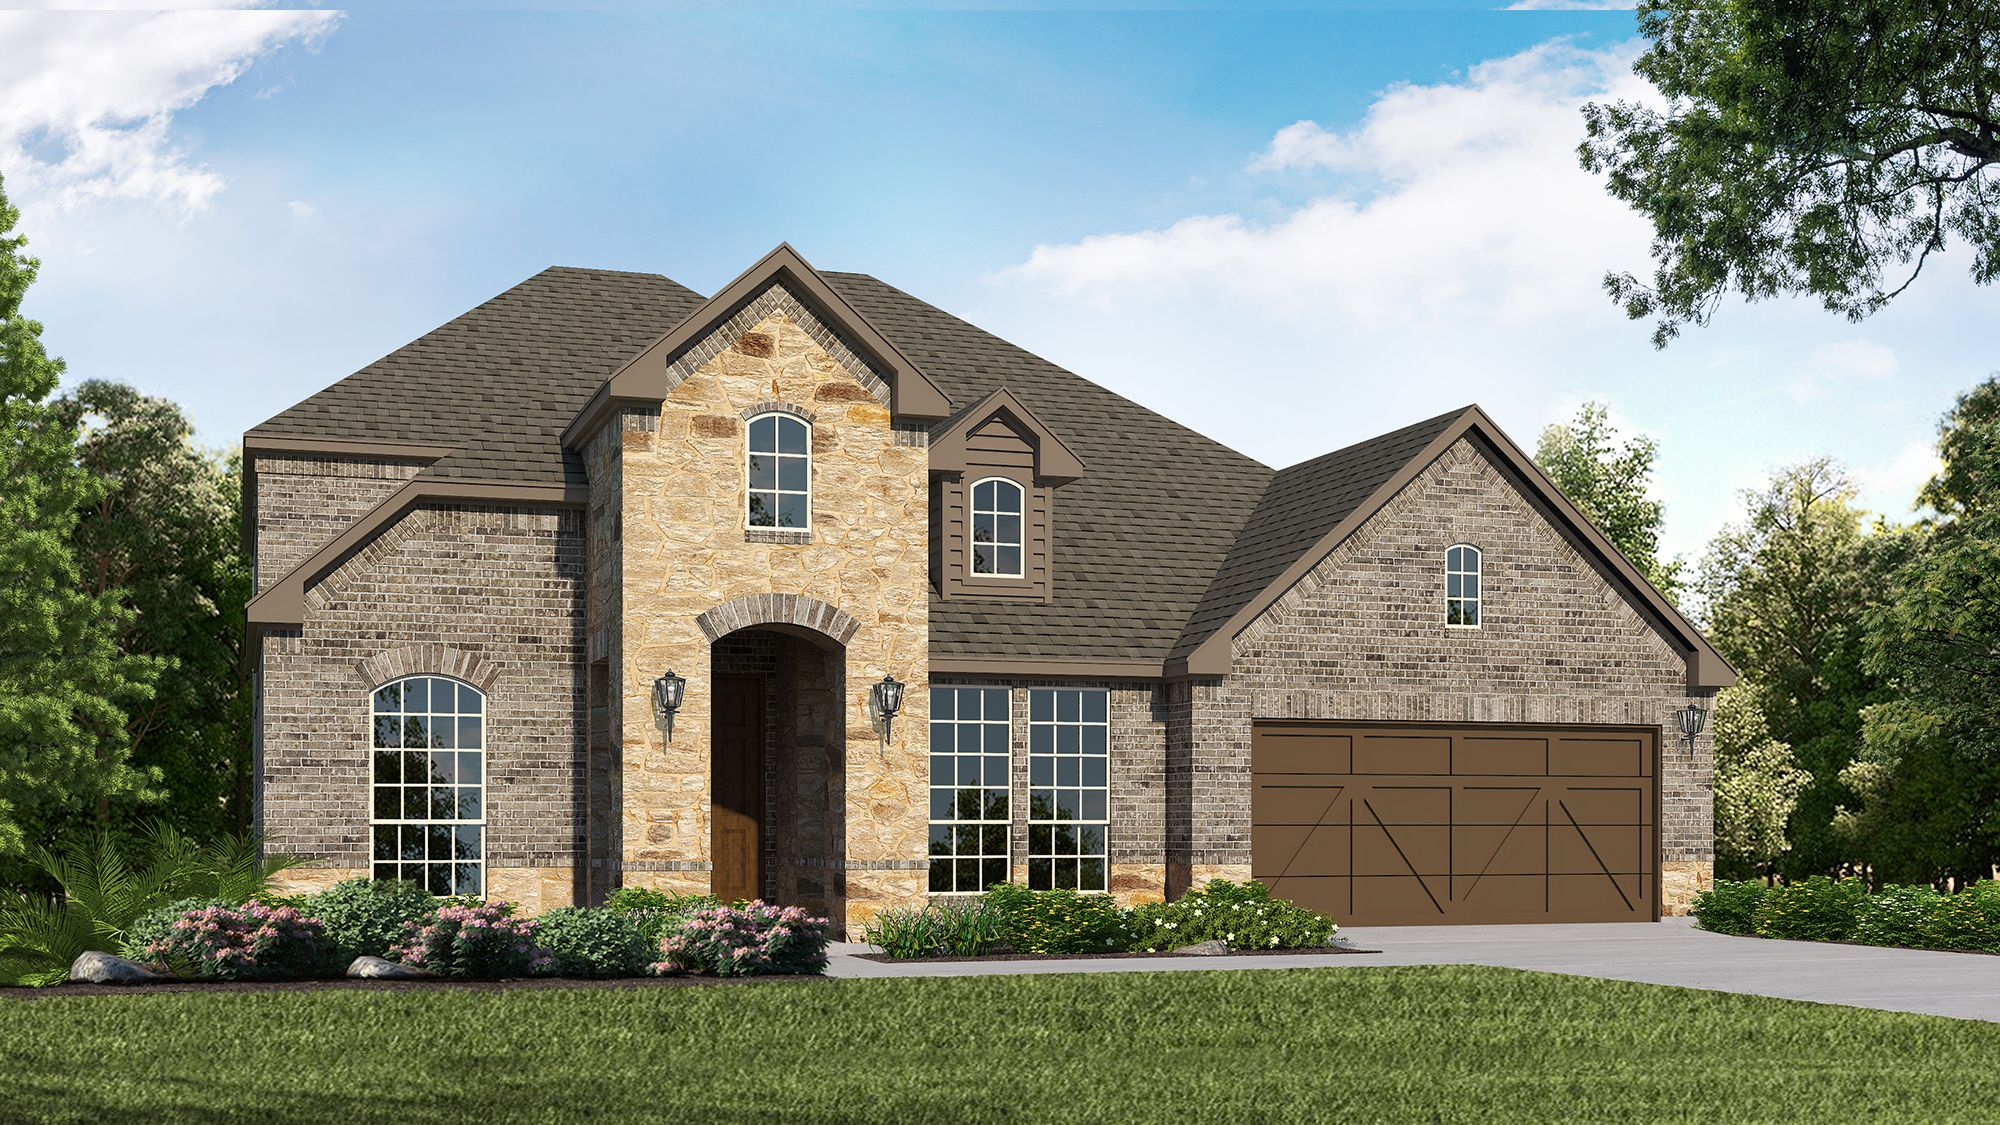 Plan 1604 Elevation A with Stone by American Legend Homes